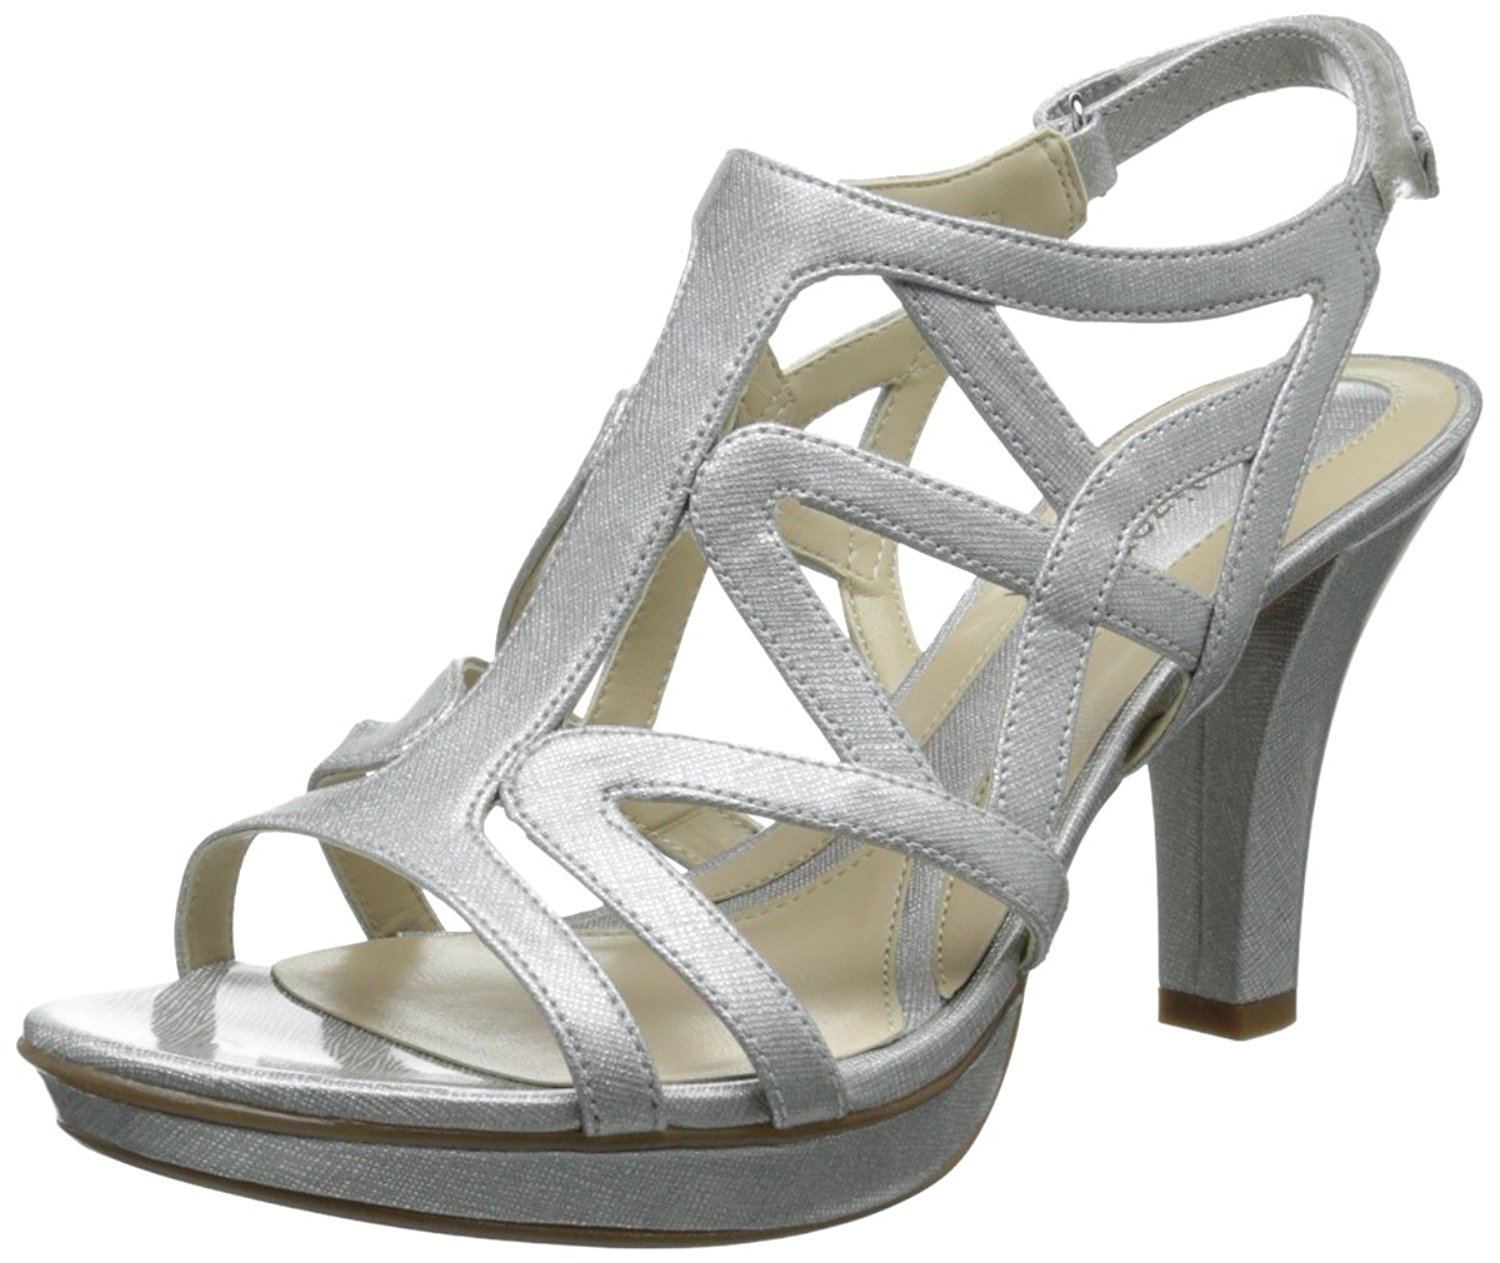 c4d127338f4d Naturalizer Womens DANYA Open Toe Special Occasion Ankle Strap ...